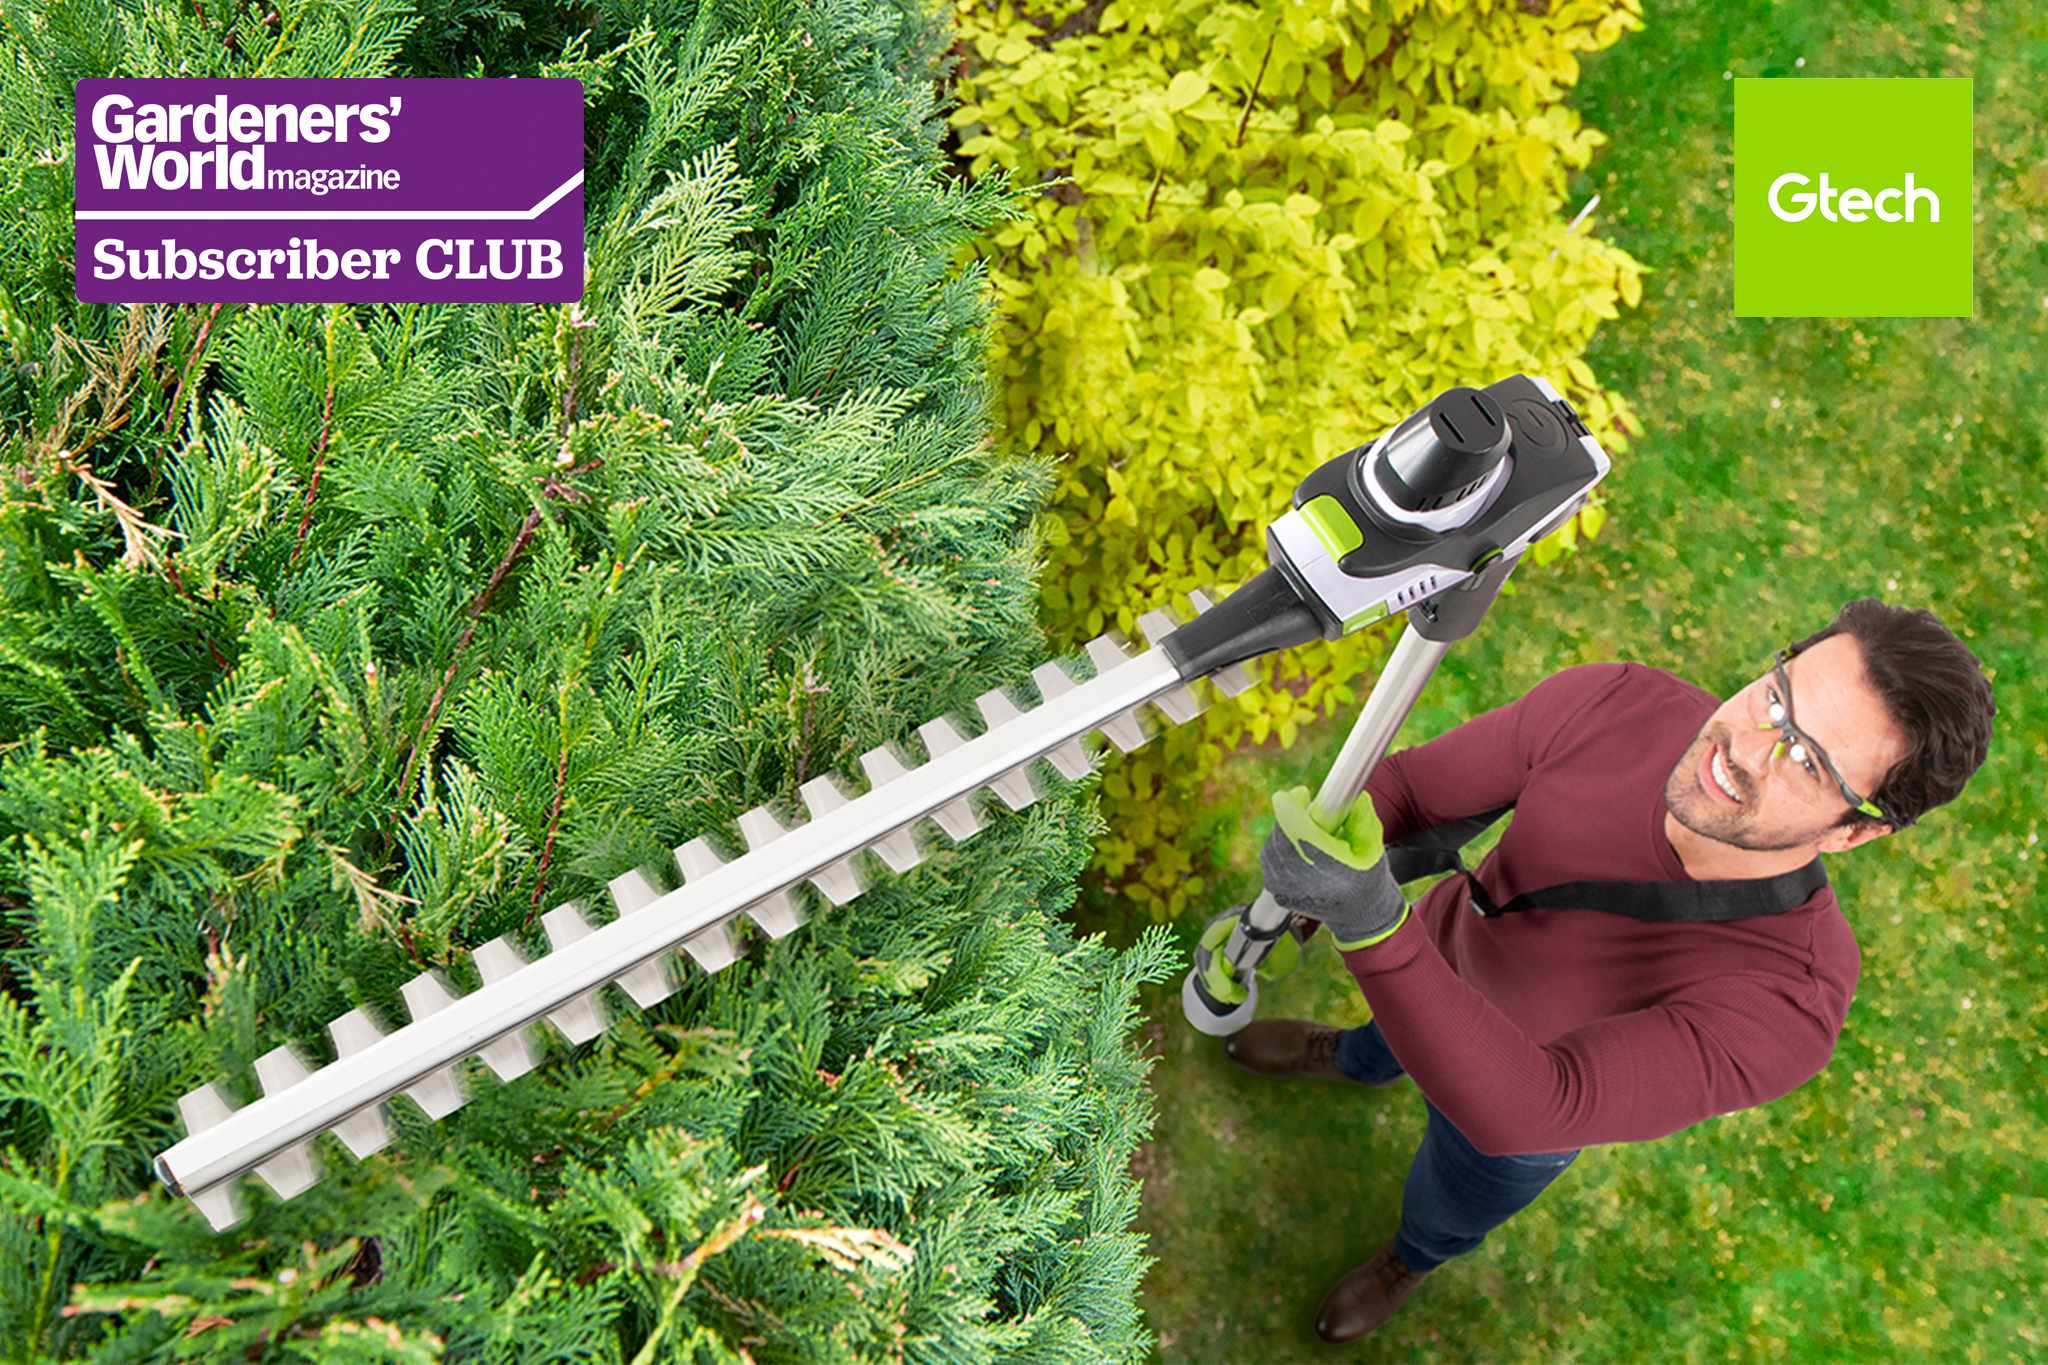 Win a cordless hedge trimmer from Gtech - BBC Gardeners' World Magazine